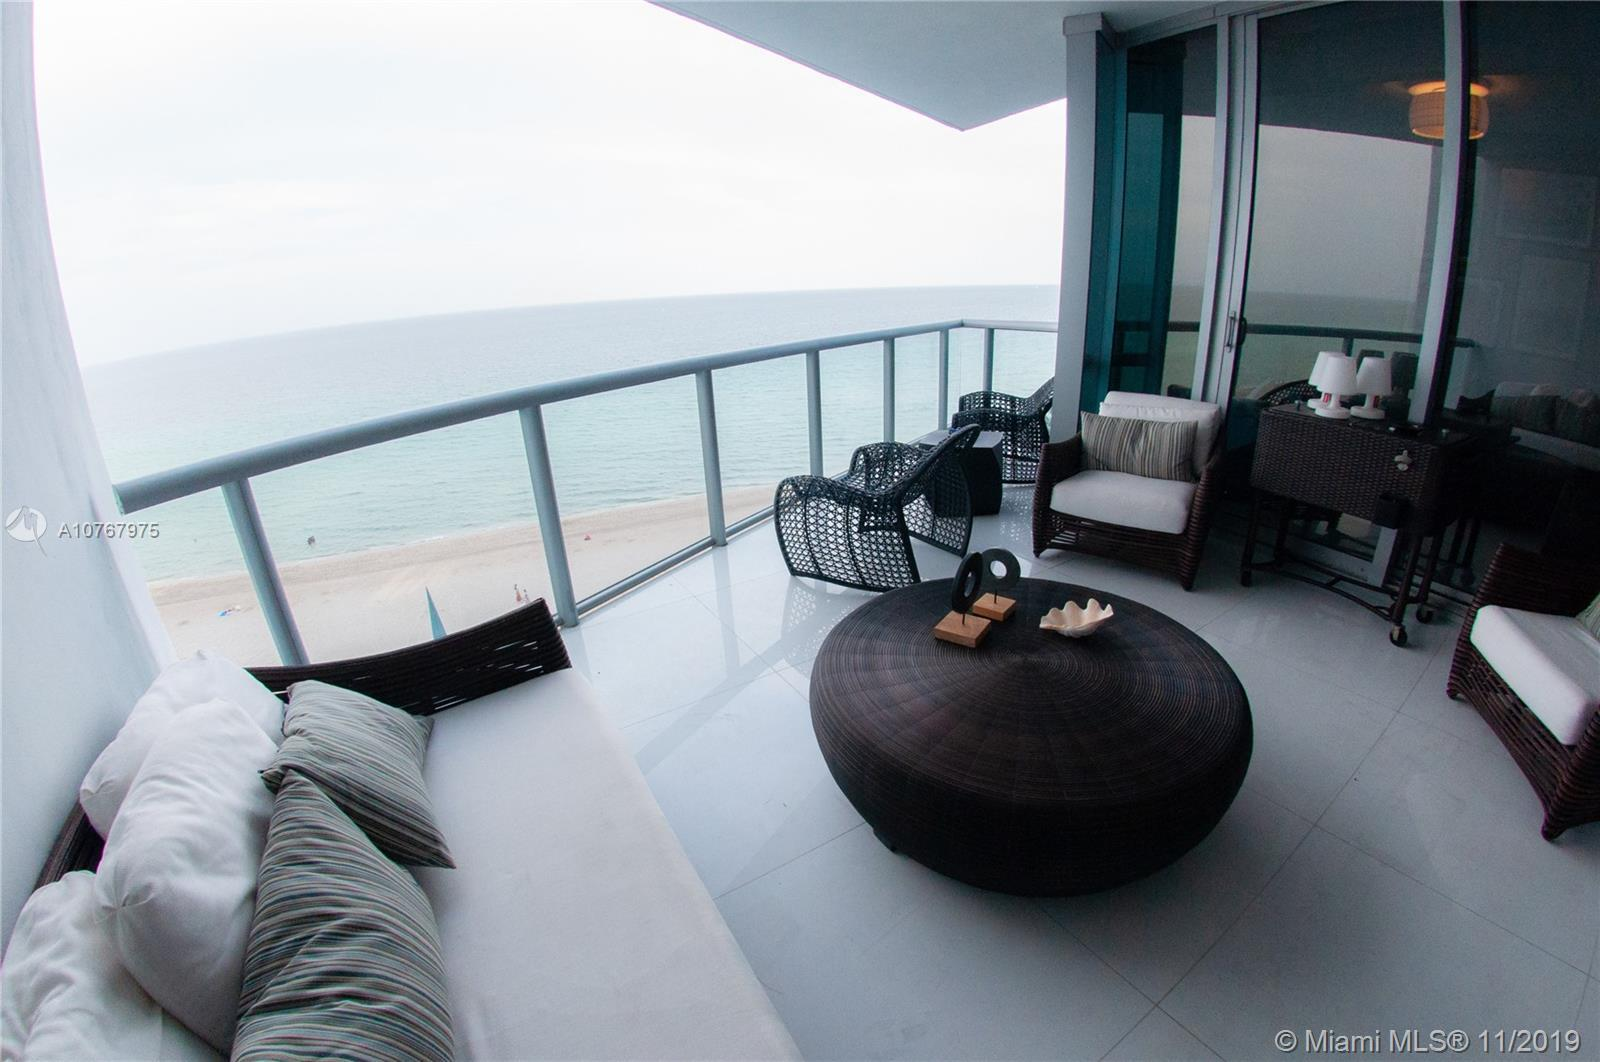 Breathtaking unobstructed Atlantic Ocean views as far as the eye can see. Exquisite, chic and modern